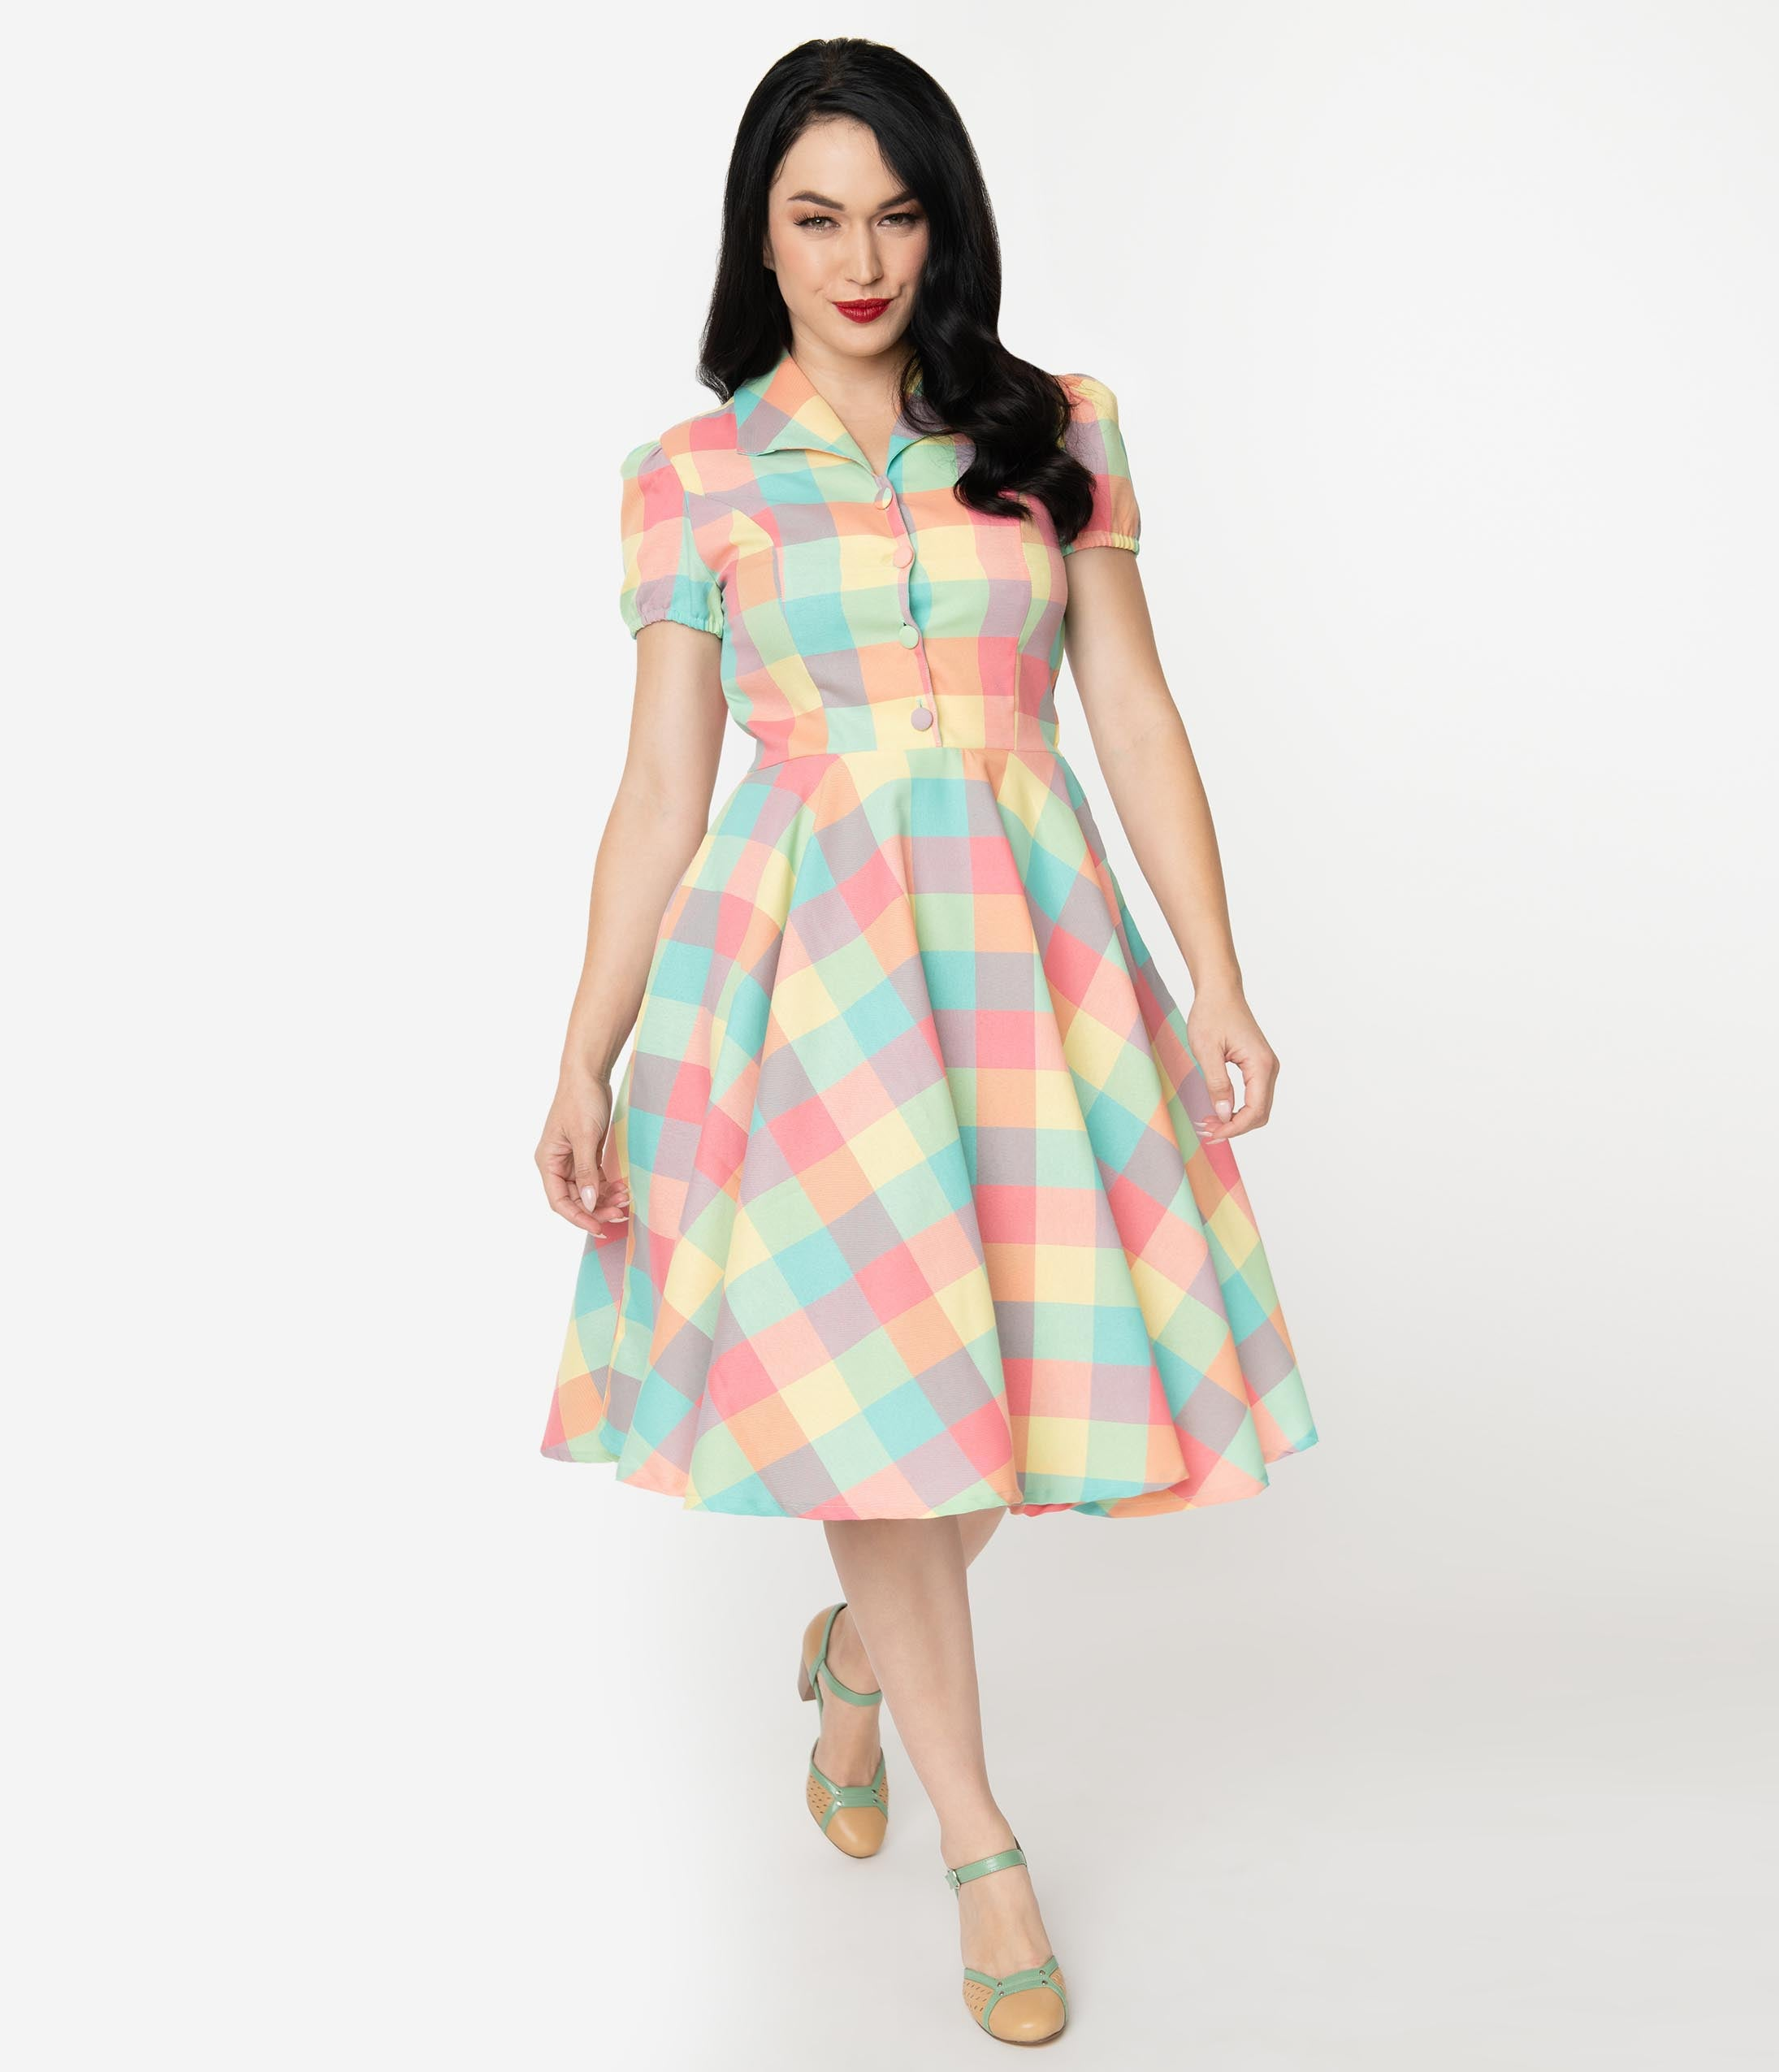 1950s Dresses, 50s Dresses | 1950s Style Dresses 1950S Style Pastel Summer Plaid Mona Swing Dress $78.00 AT vintagedancer.com